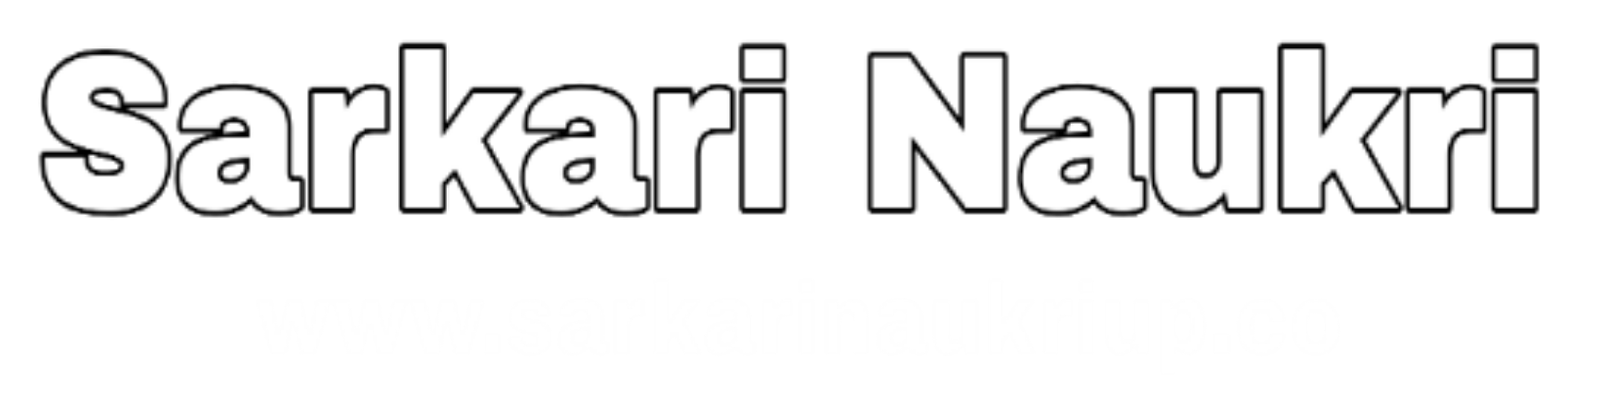 Sarkari Results, Latest Online Form | Results 2019 - Sarkarinaukriup.co